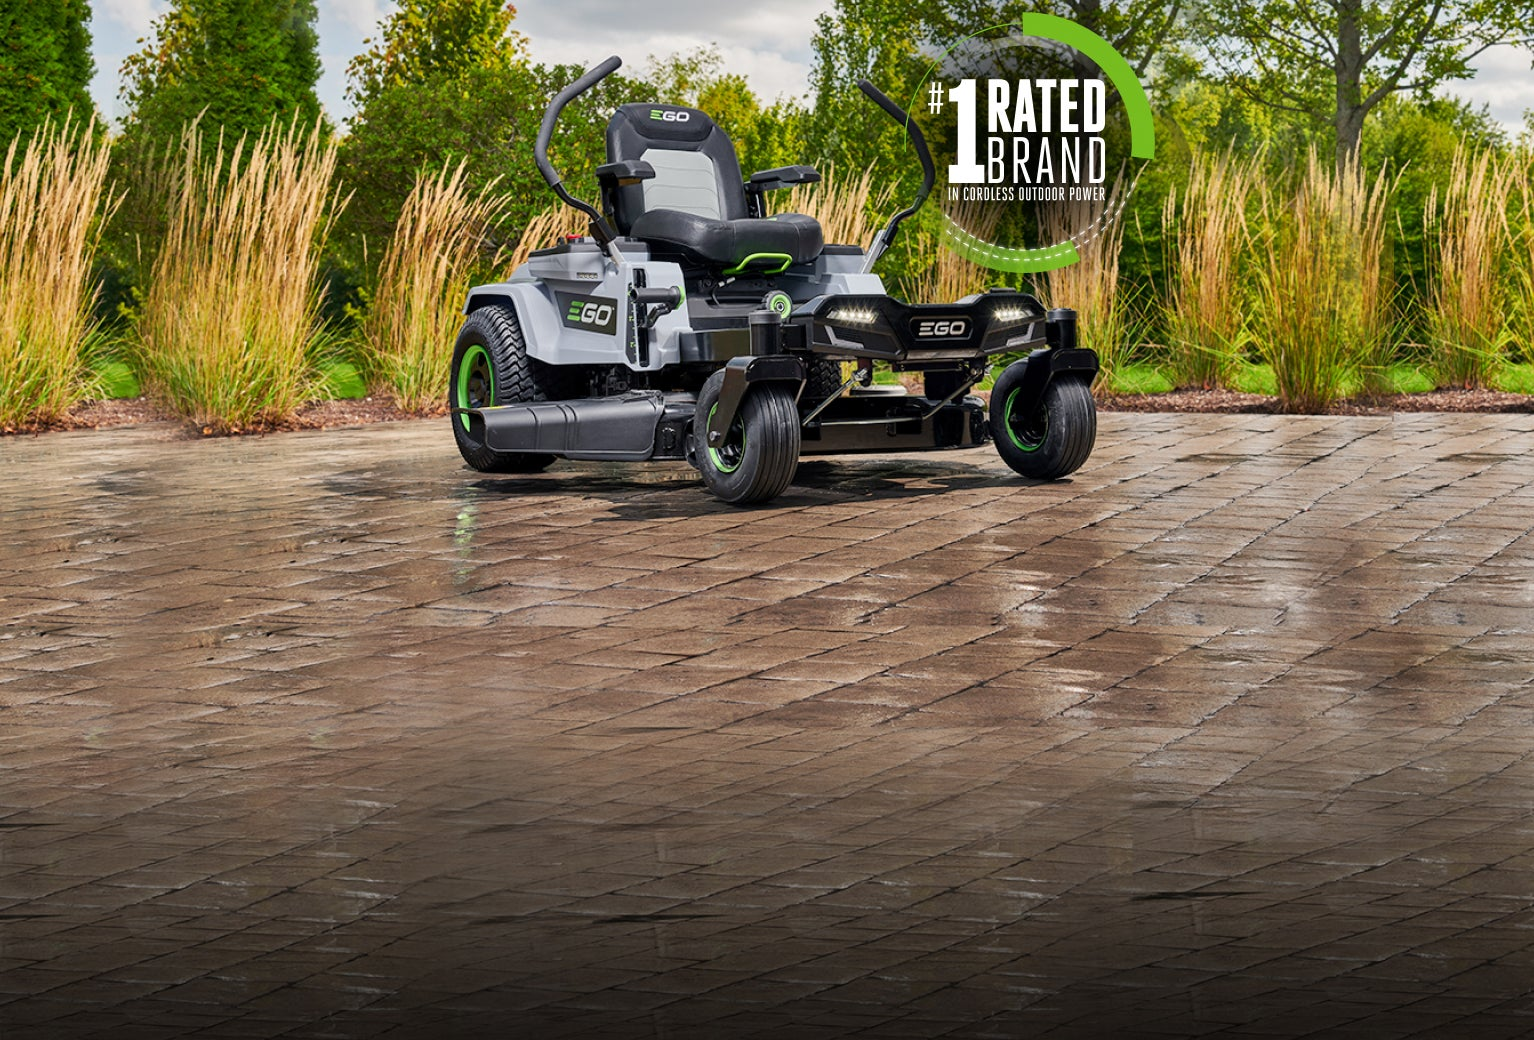 The Z6 Zero Turn Riding Mower on a driveway